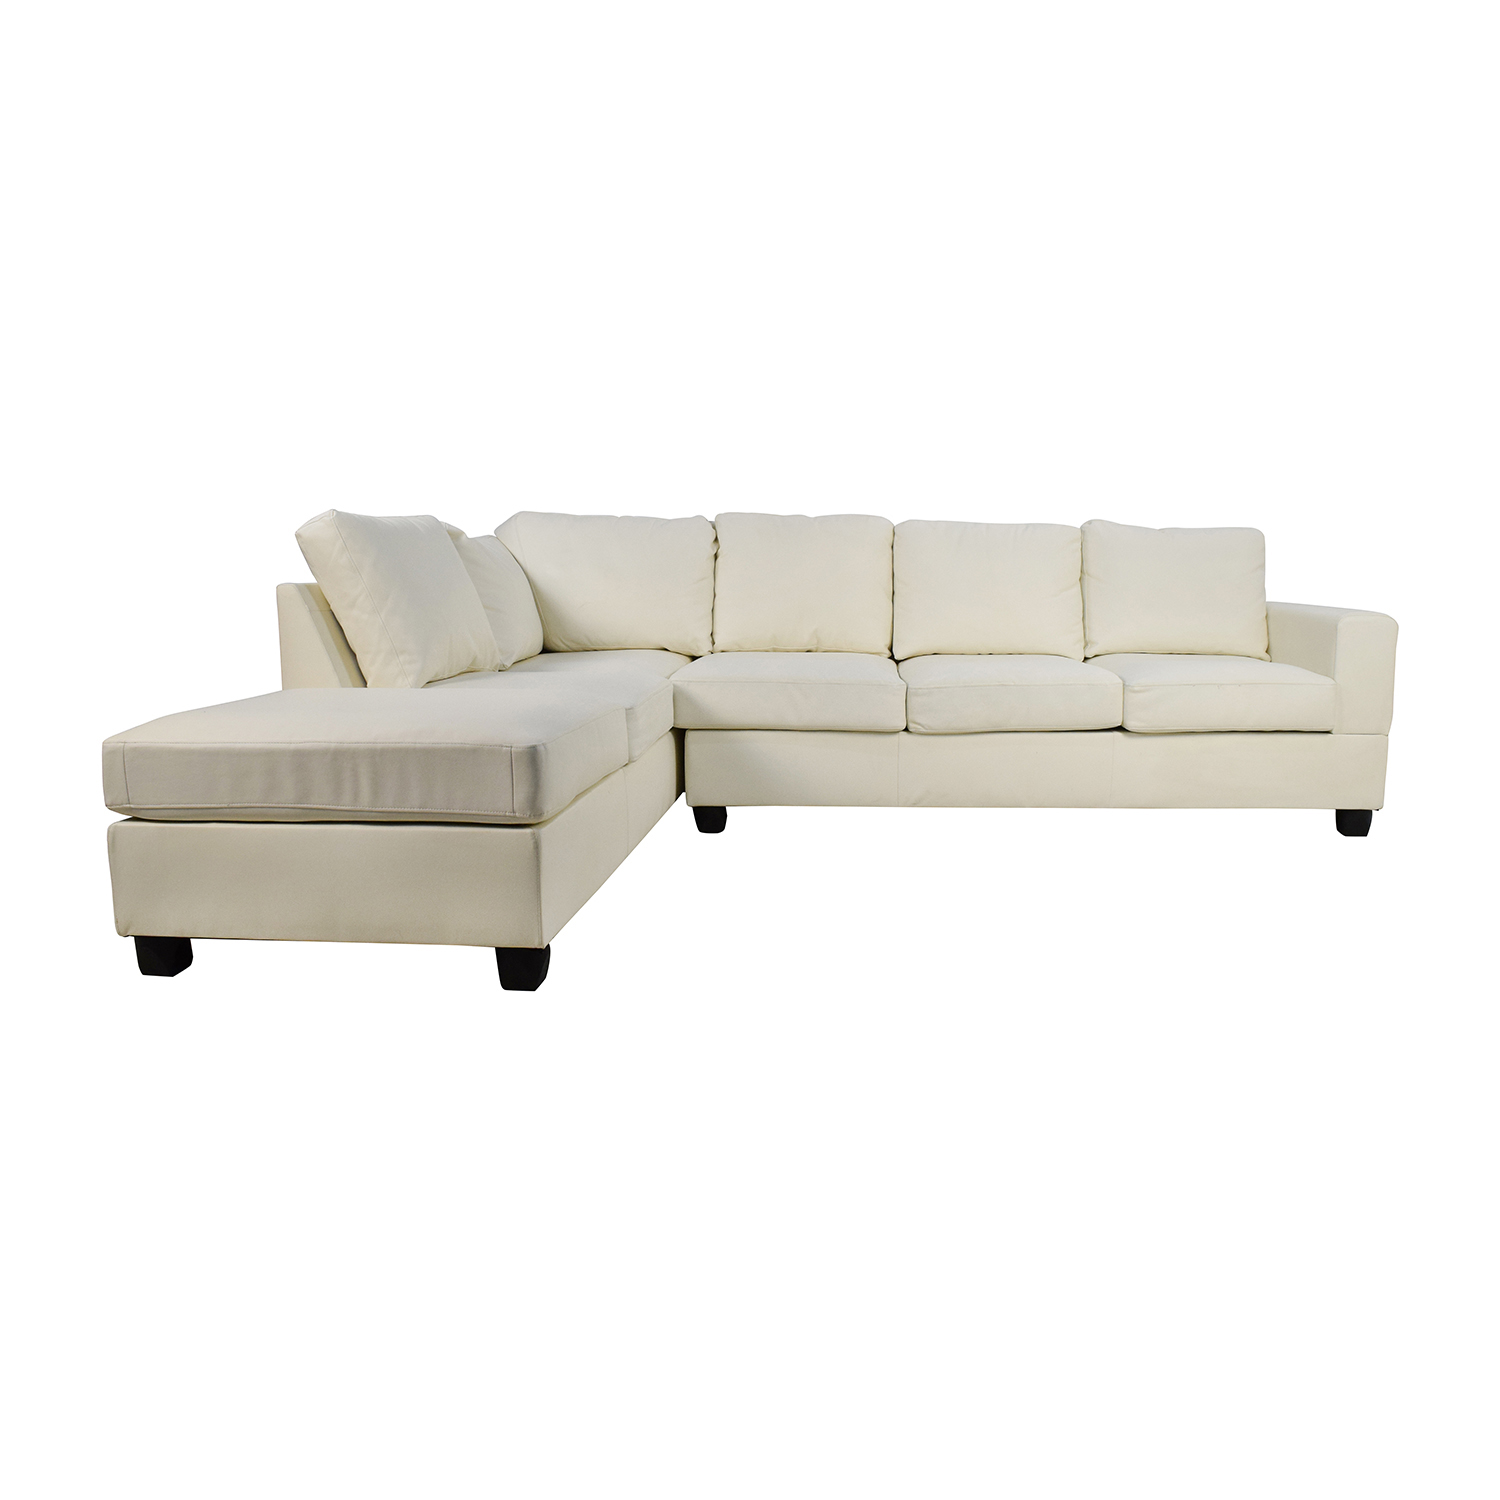 Second hand l shaped sofa for Second hand sofas